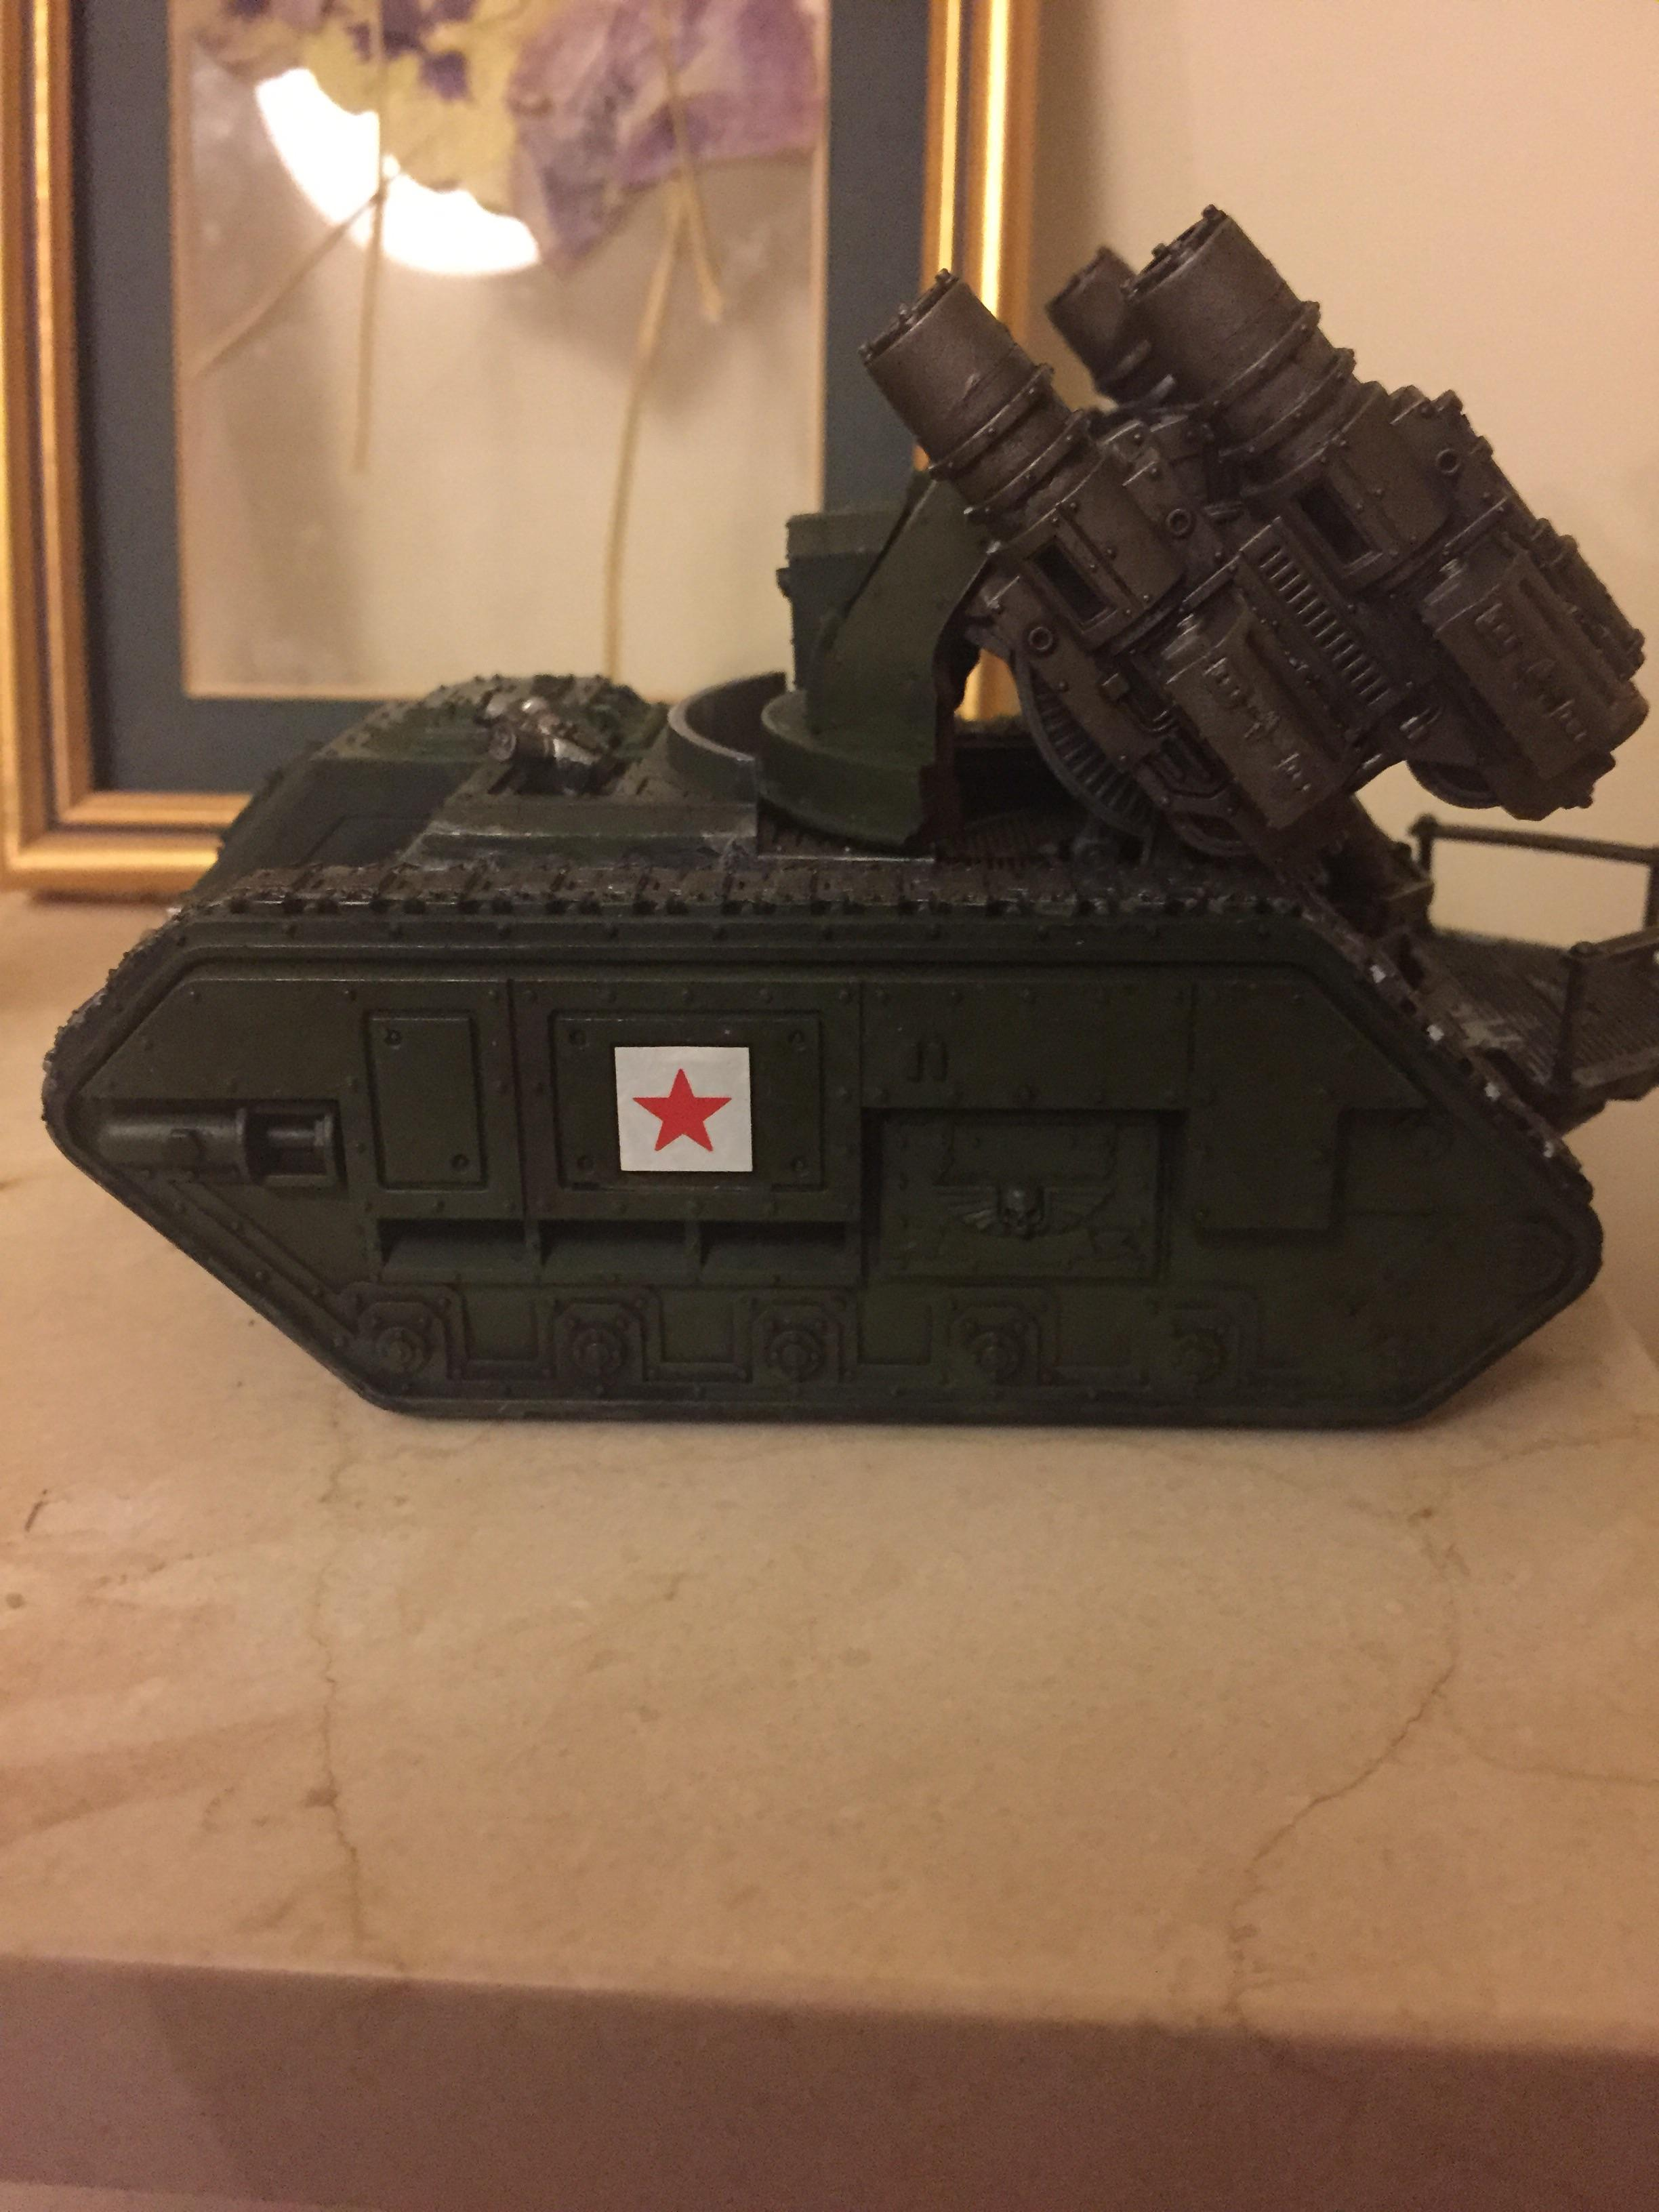 China, Guard, Imperial, Imperial Guard, Star, Tank, Wyvern